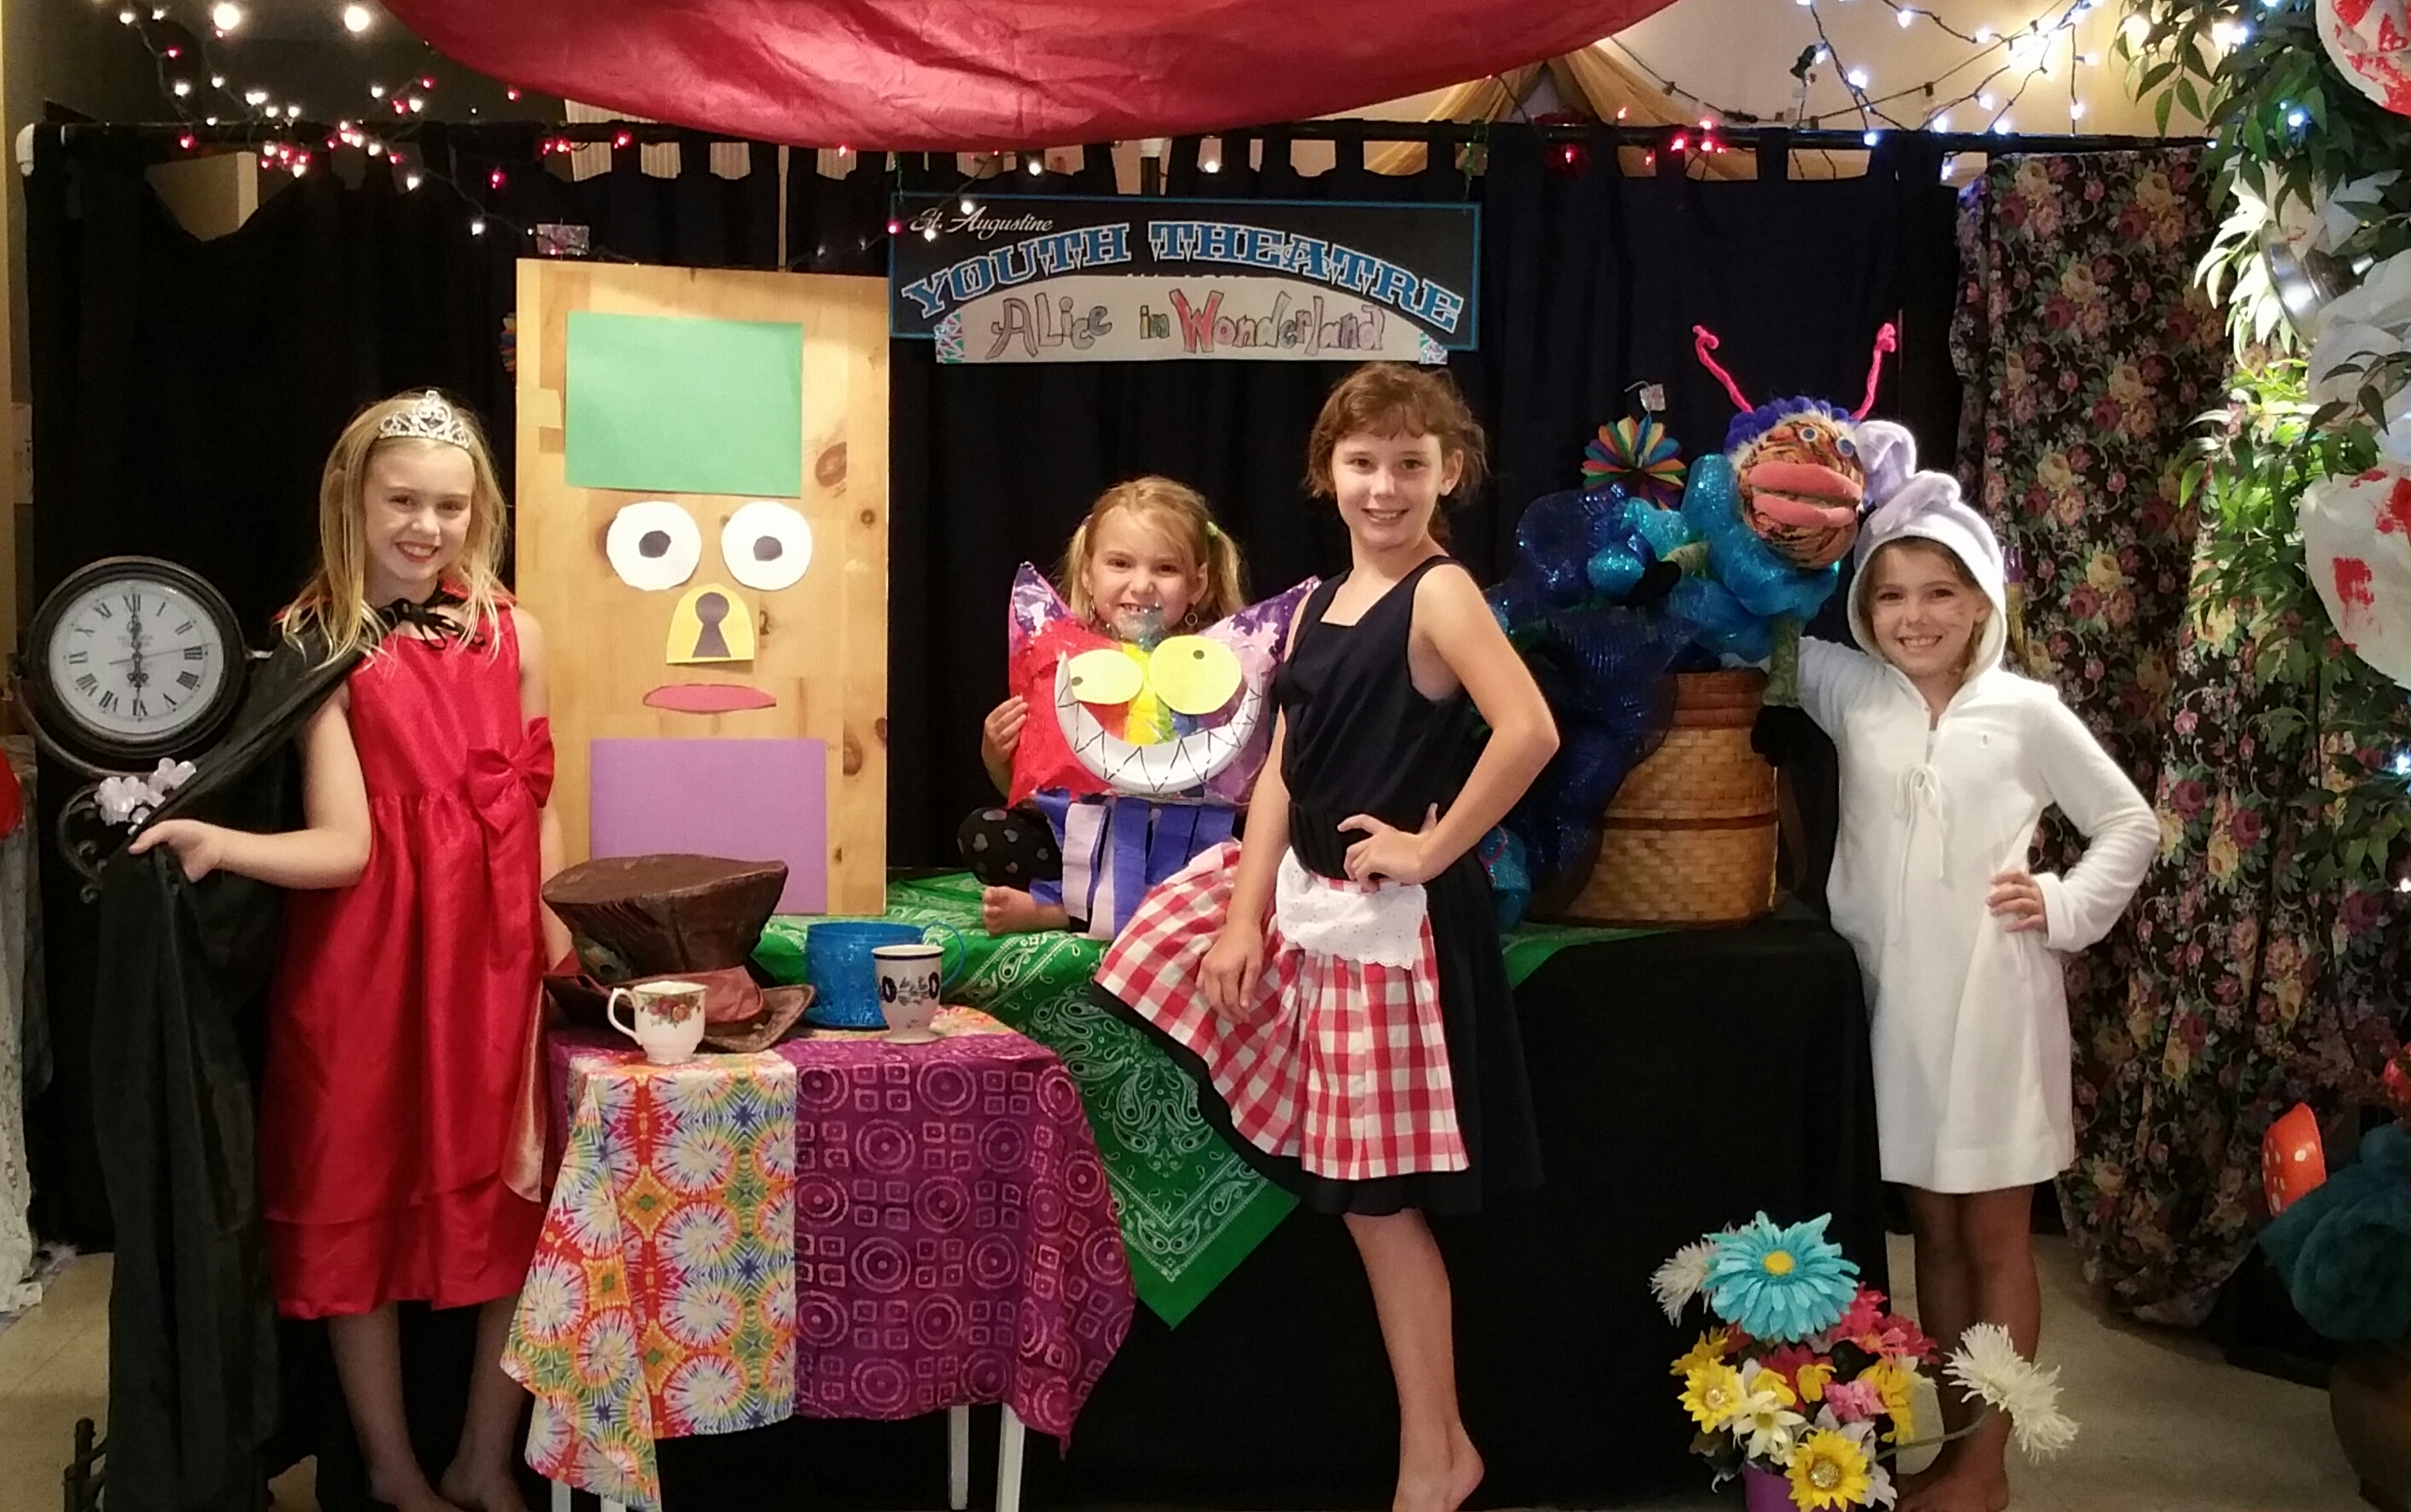 Alice in Wonderland will be staged at 2 p.m. July 25-26 at Rock Art Studio, 1333 Old Dixie Hwy. Contributed image